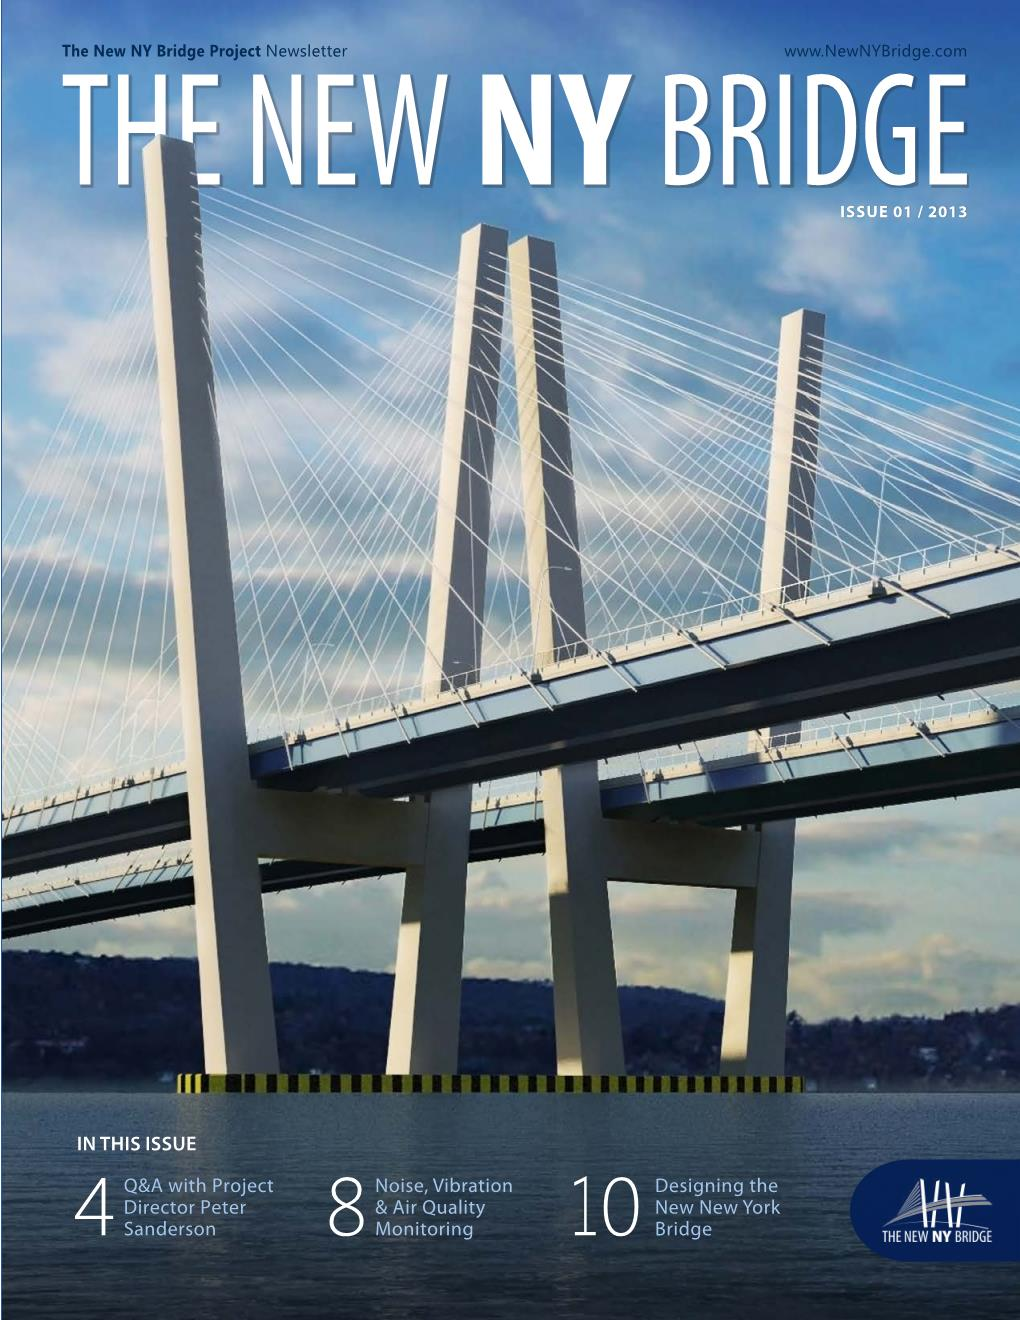 The New NY Bridge Newsletter